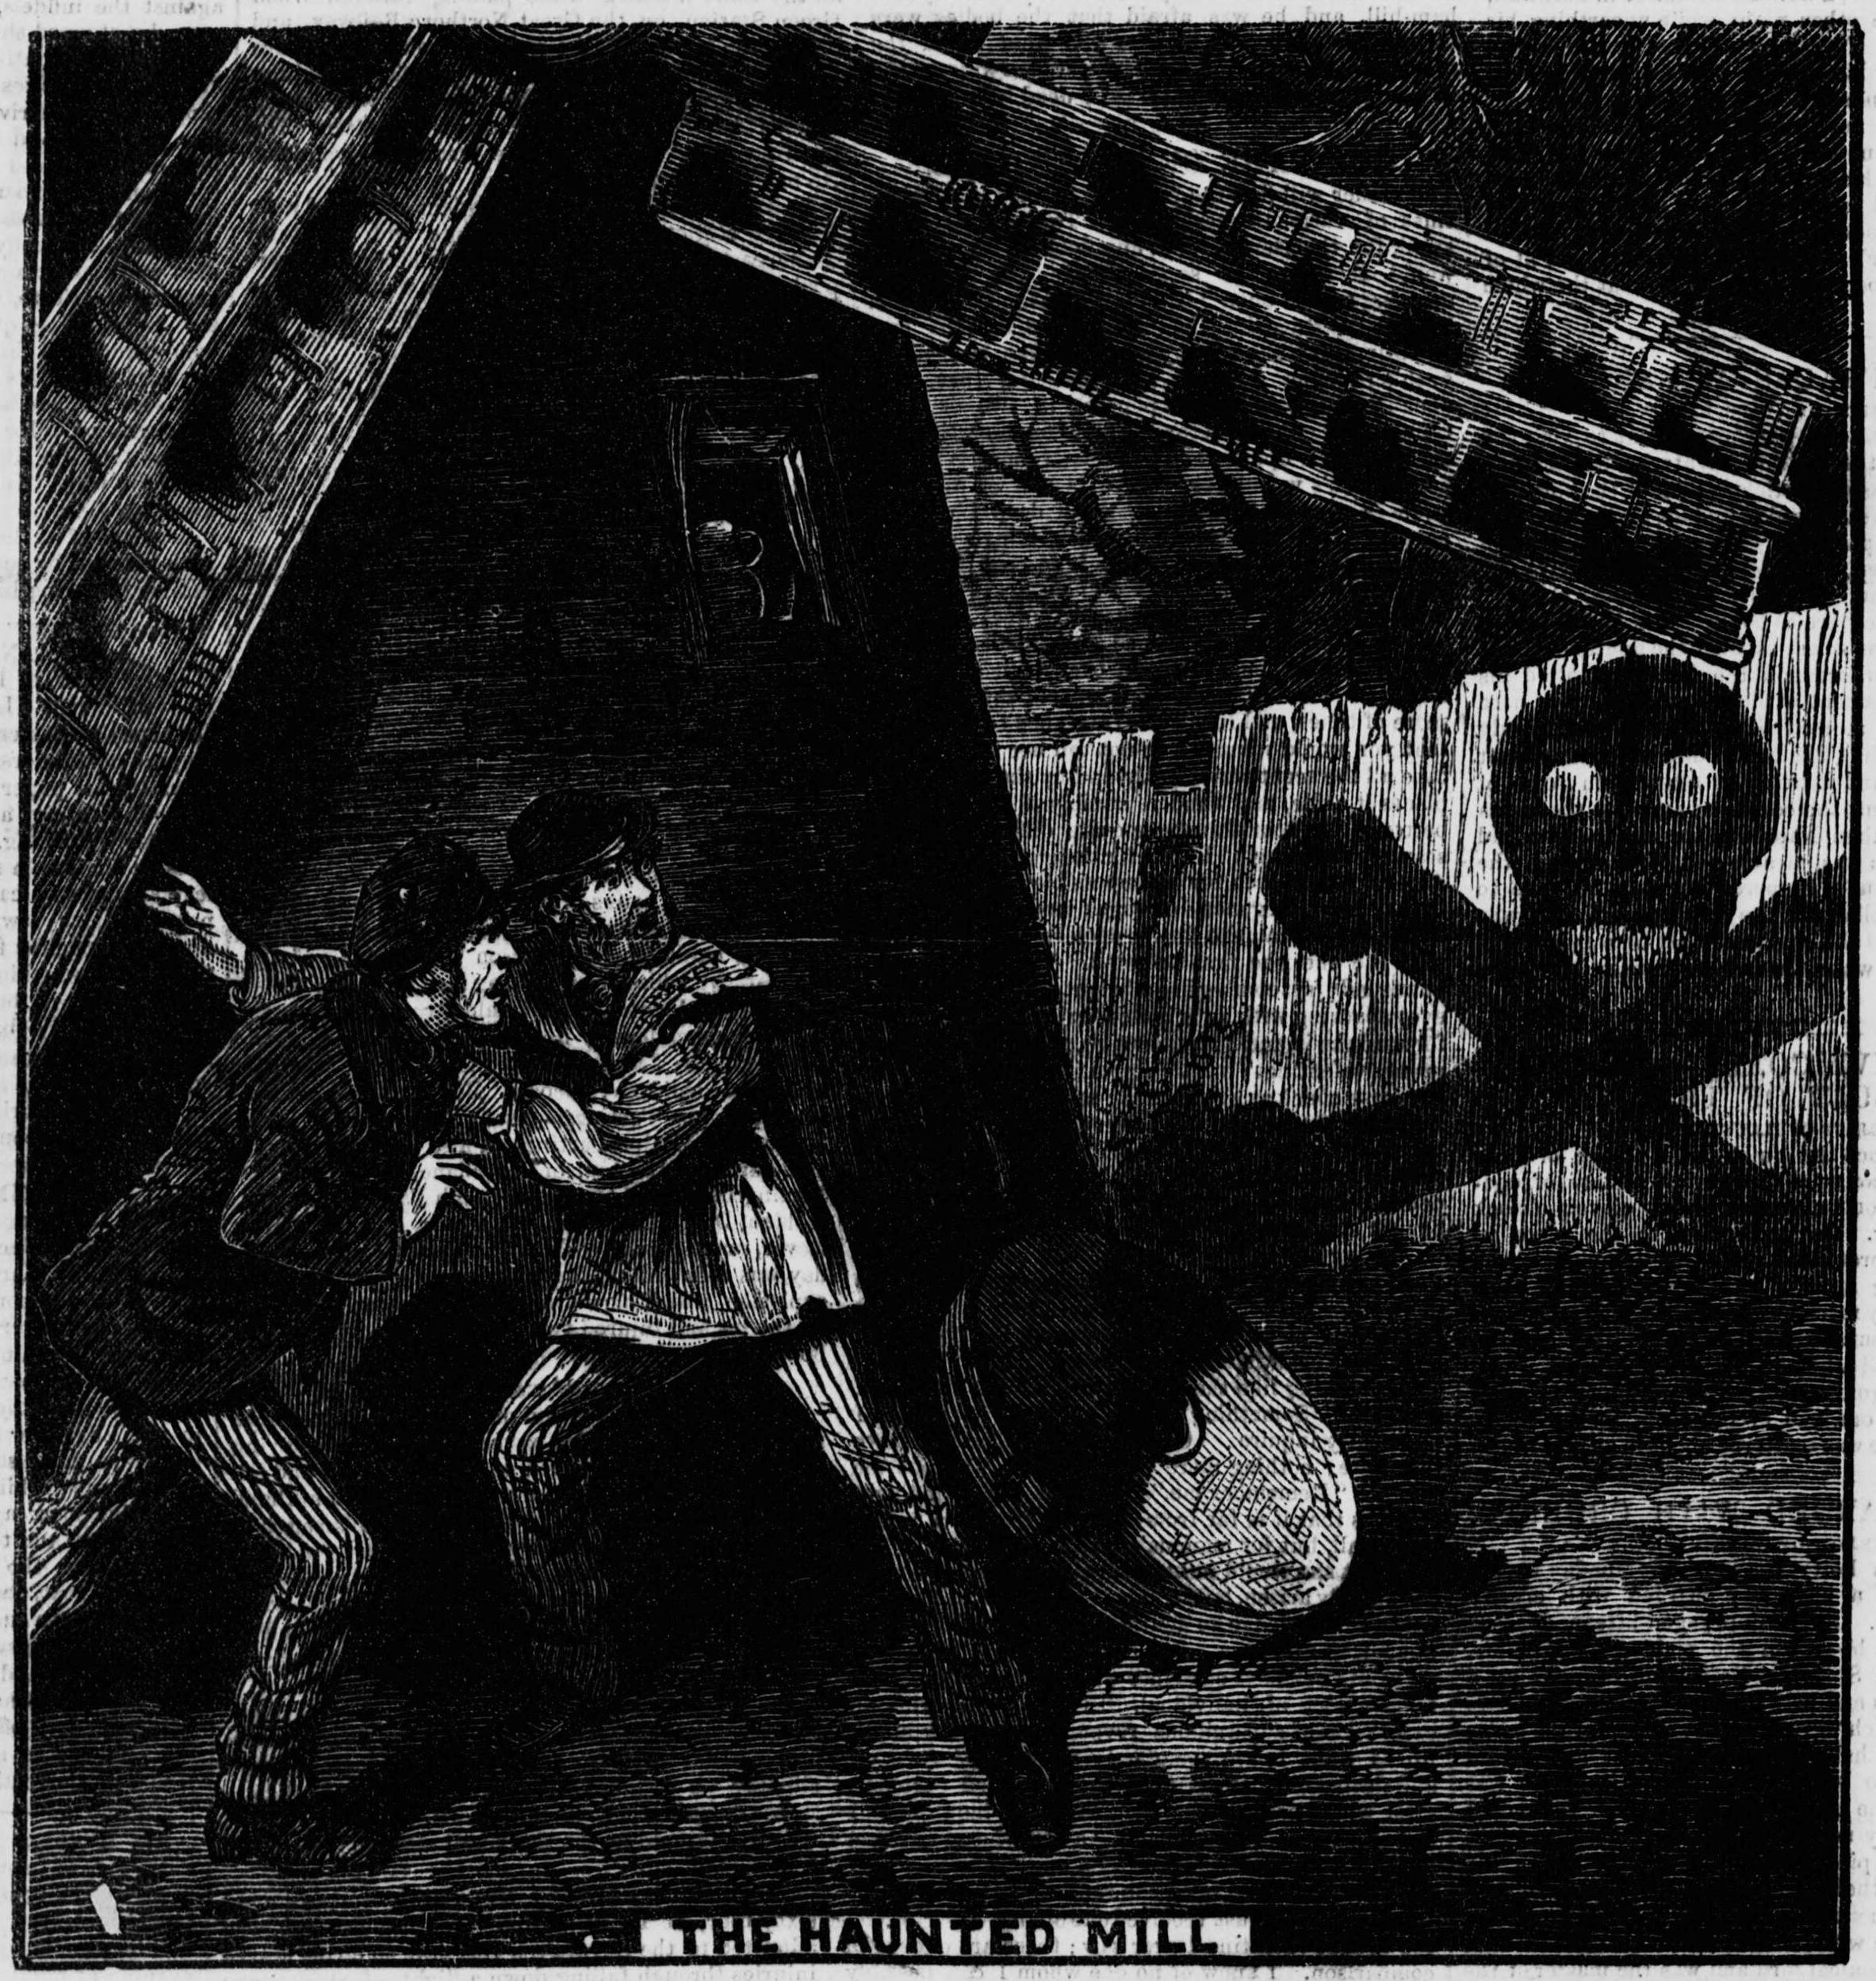 The haunted mill illustration